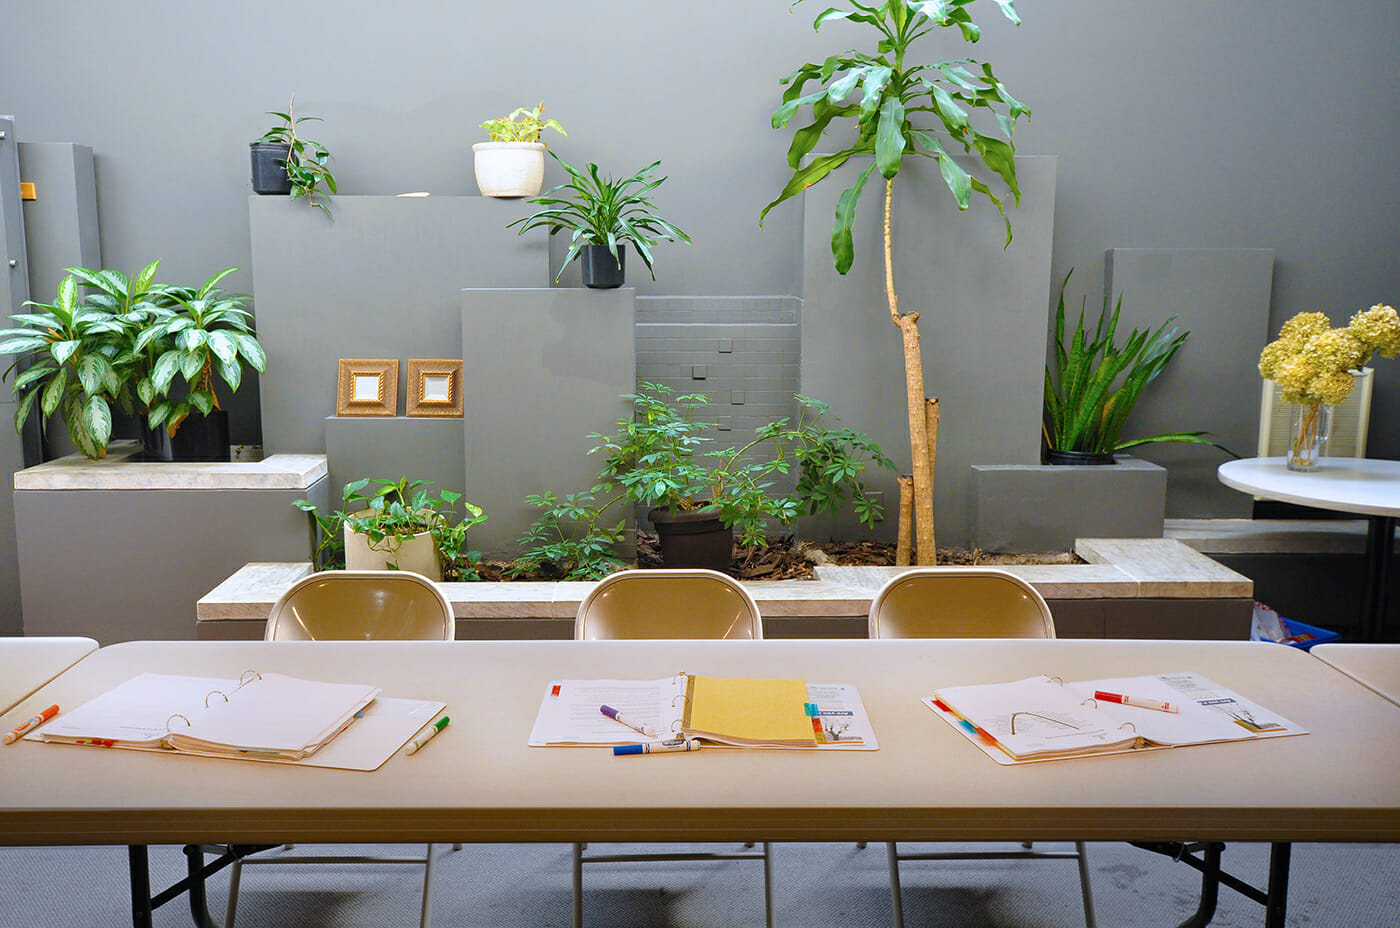 Table and chairs with binders and markers, in front of wall with plants at the Wright Centre.